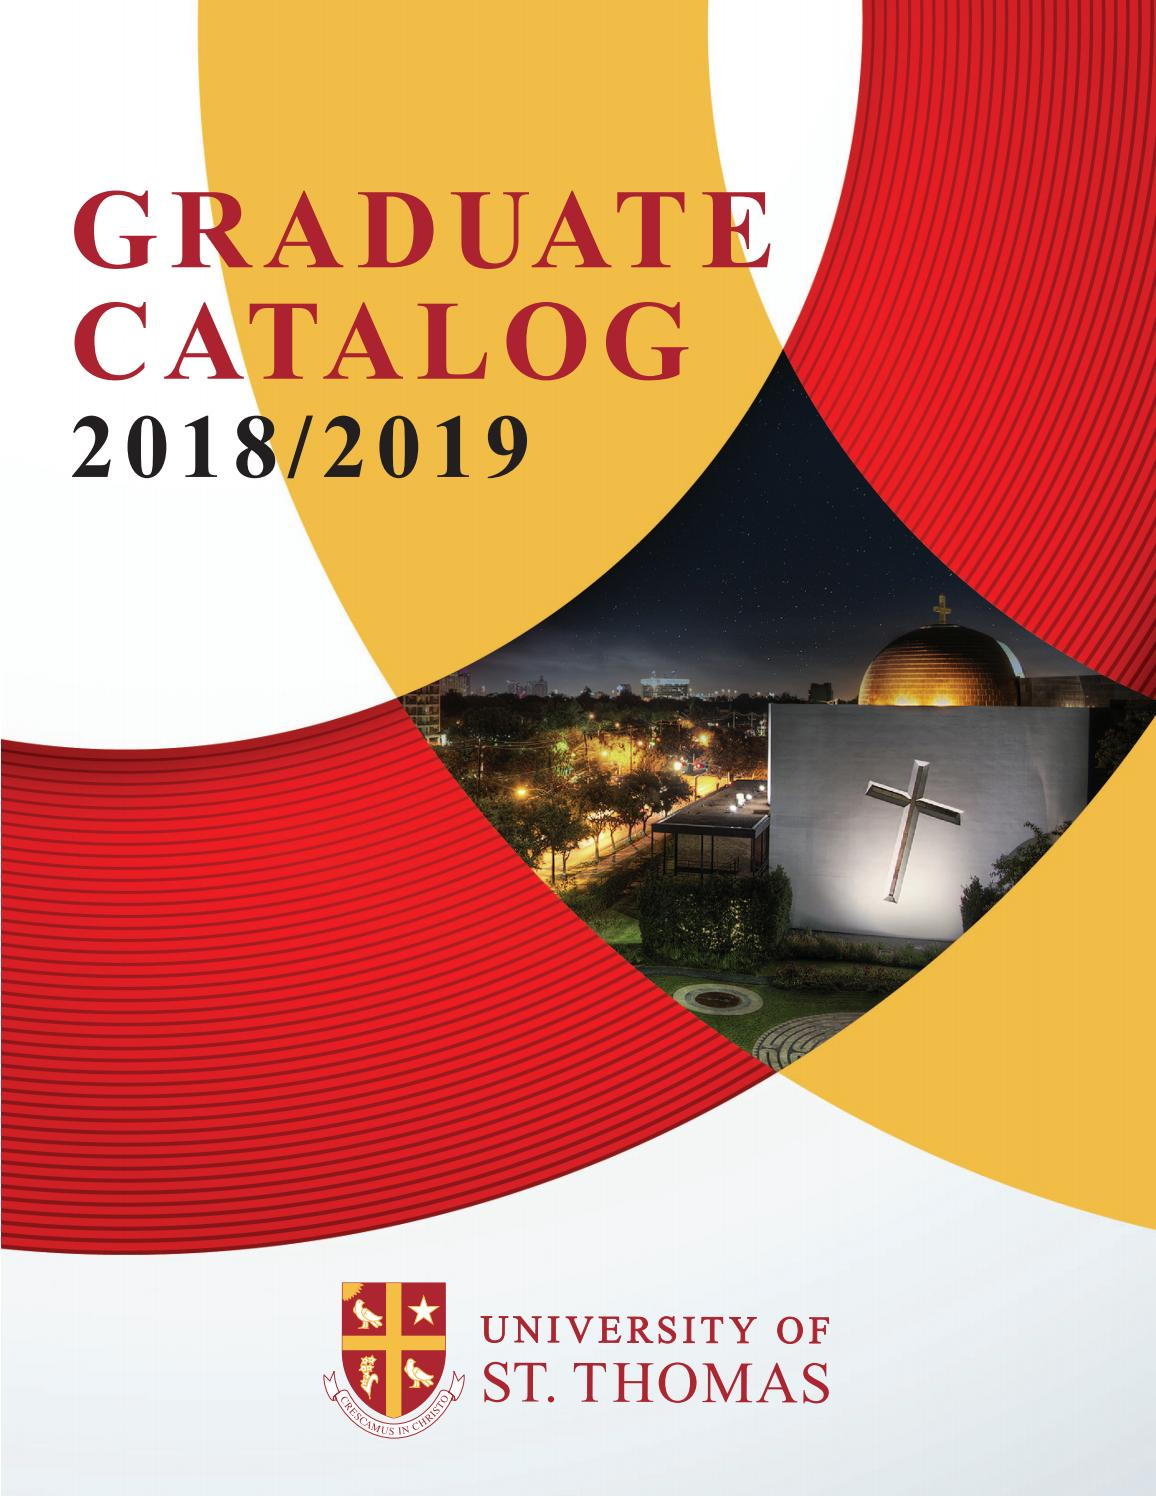 University of St. Thomas Graduate Catalog by university of st. thomas -  issuu